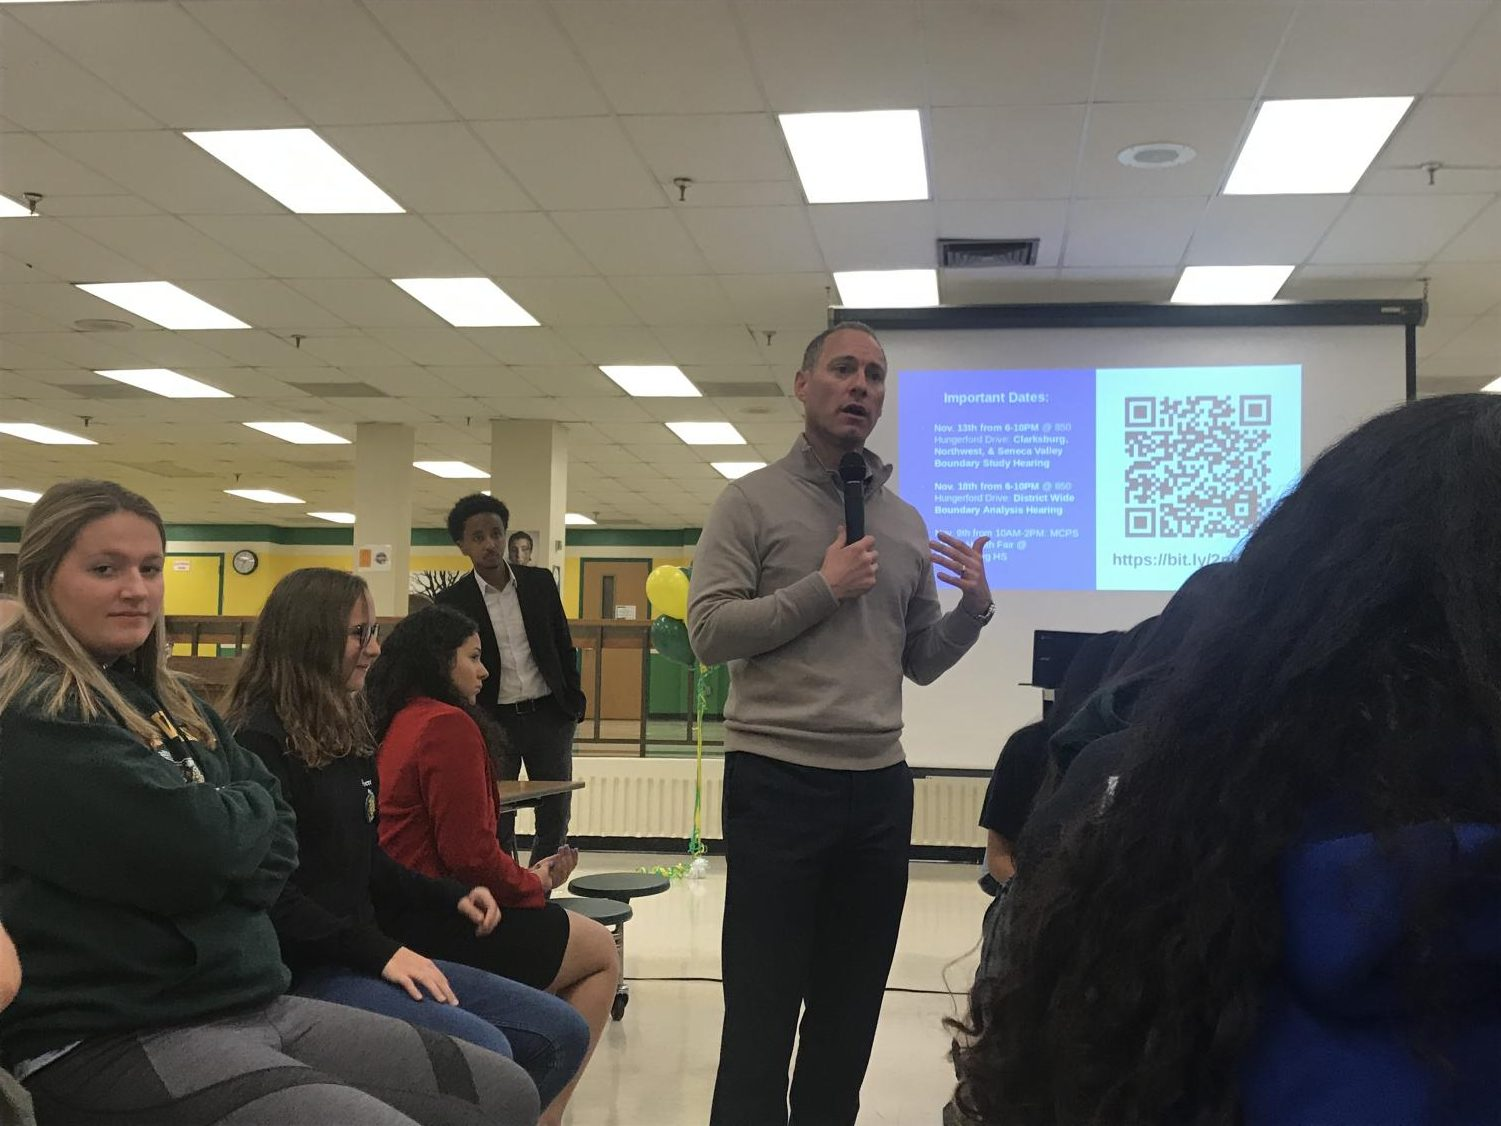 MCPS Chief Operating Officer Andrew Zuckerman speaks at SMOB Nate Tinbite's first town hall, held at Seneca Valley High School. The Q&A session with Zuckerman presented students with a platform to voice their concerns and gain first-hand knowledge on MCPS policies.